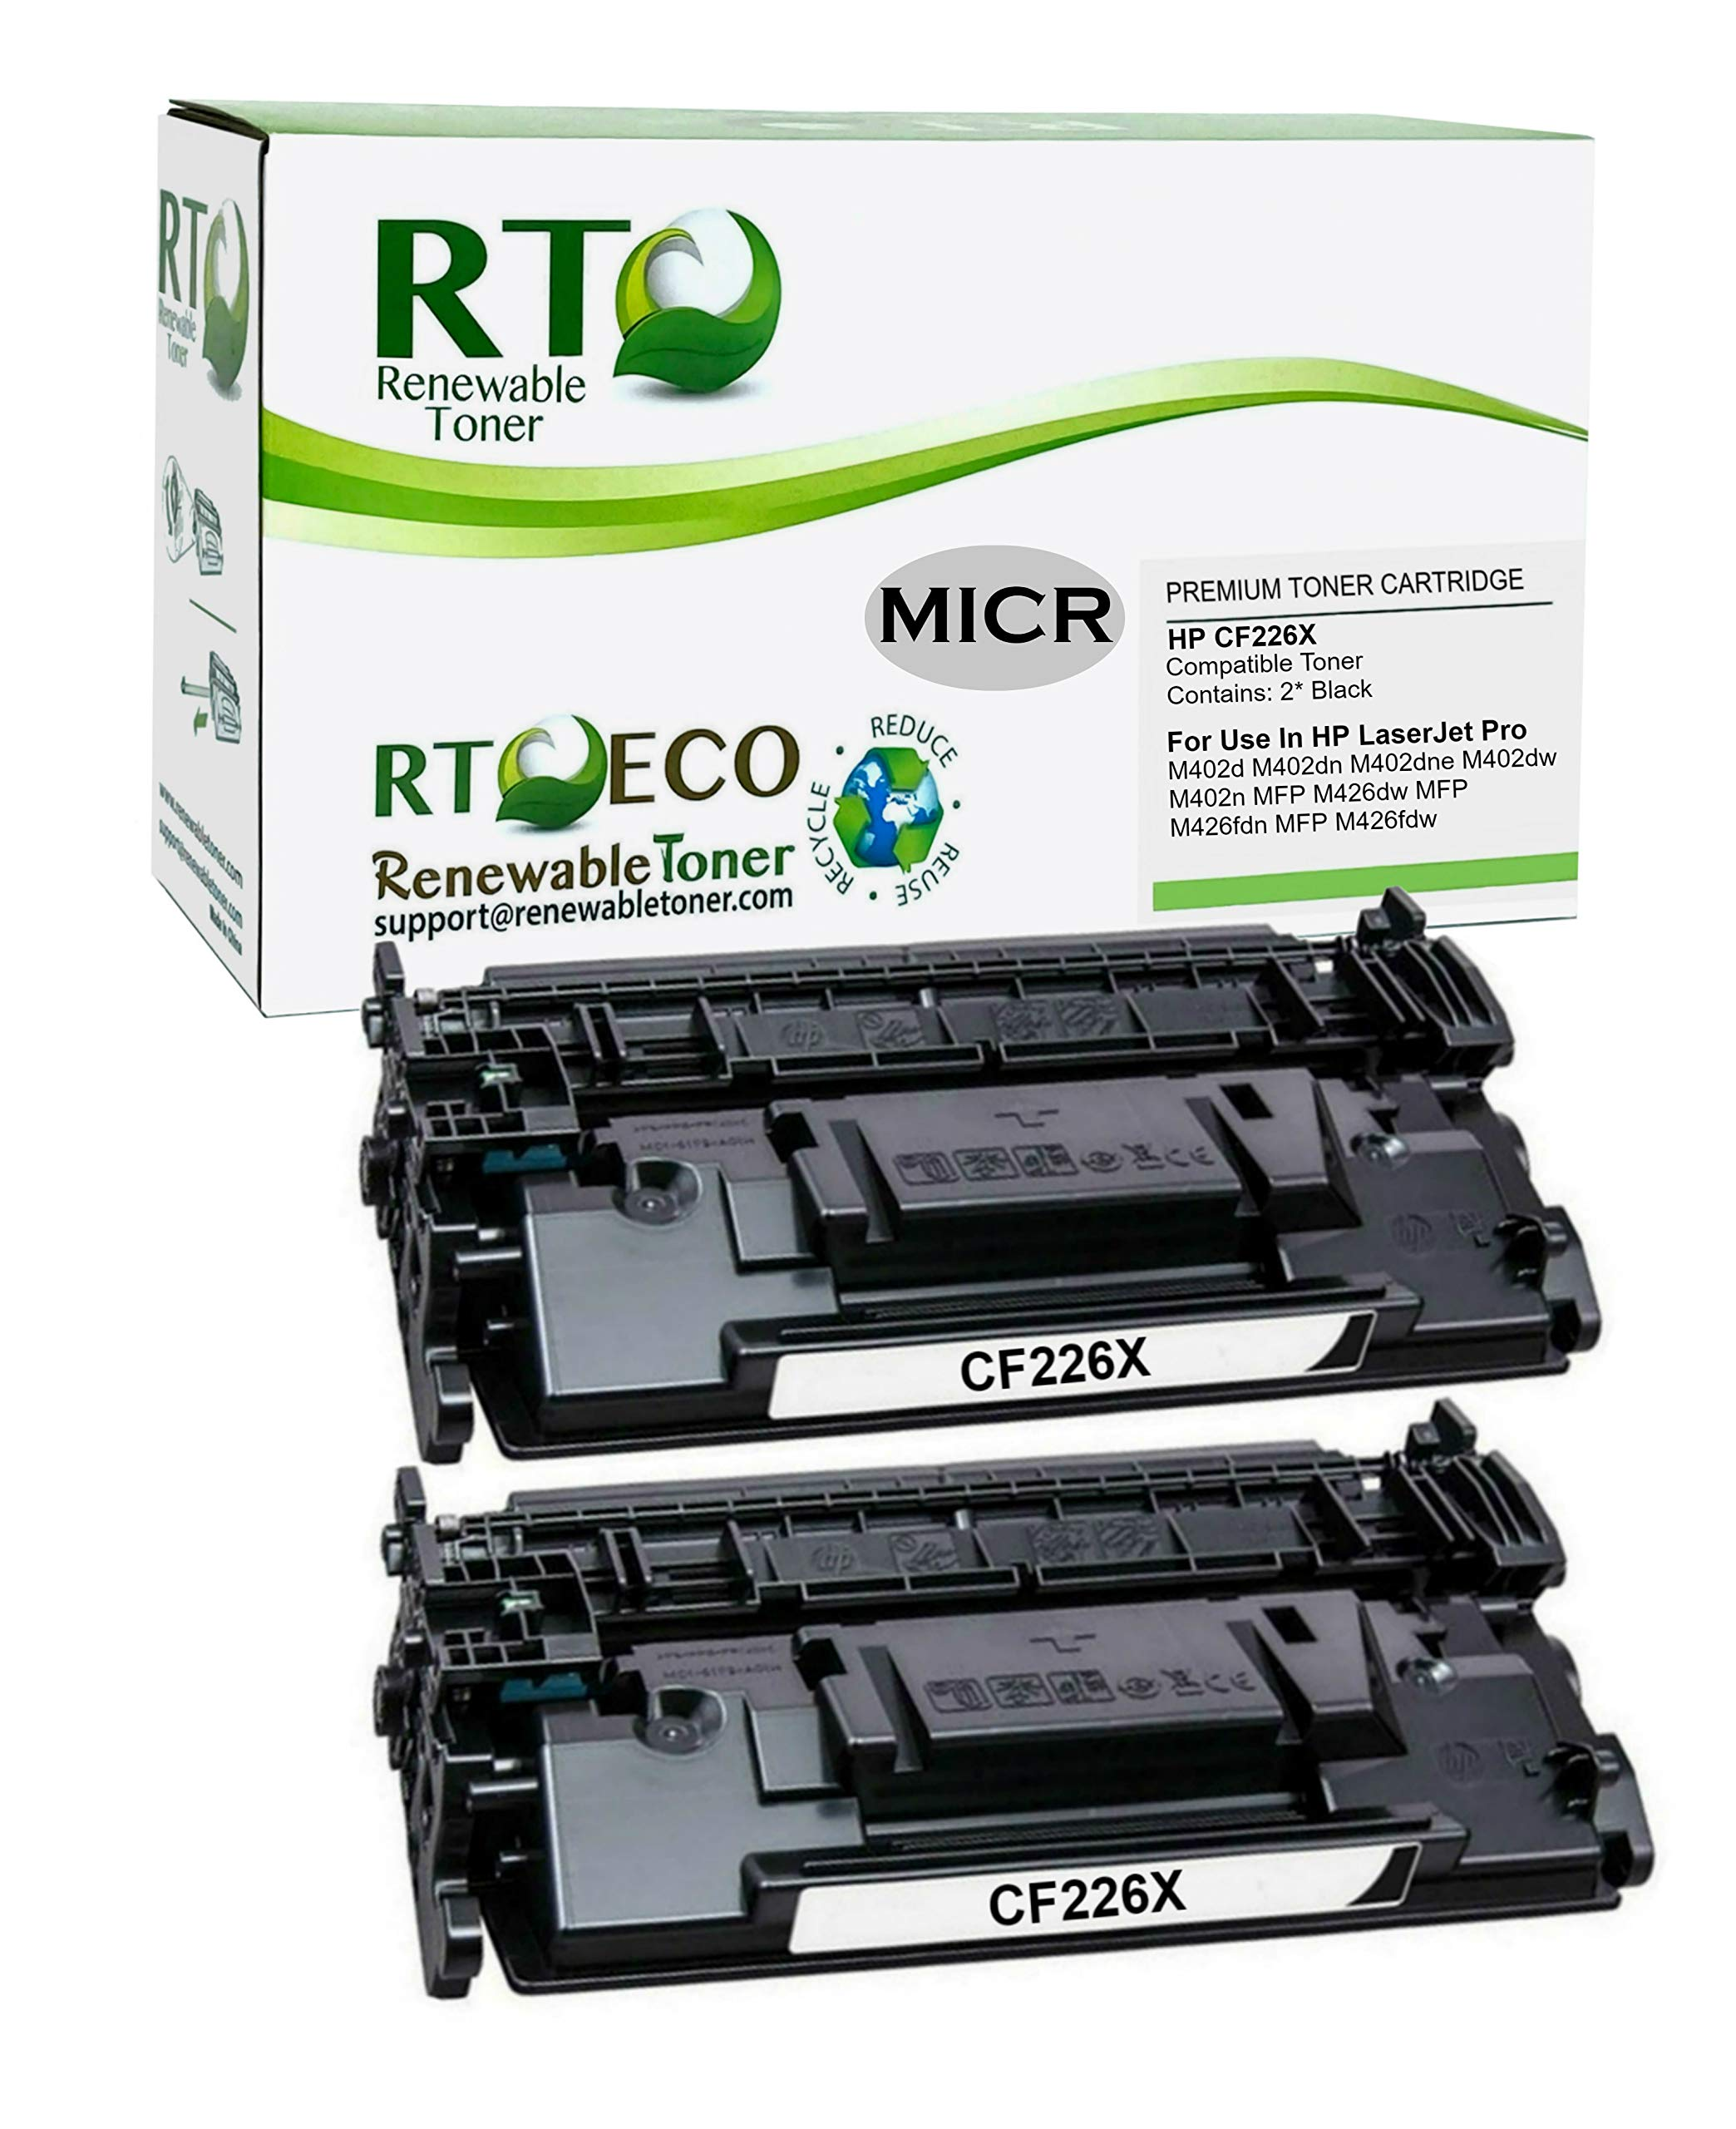 LD Compatible Toner Cartridge Replacement for HP 55X CE255X High Yield Black, 4-Pack